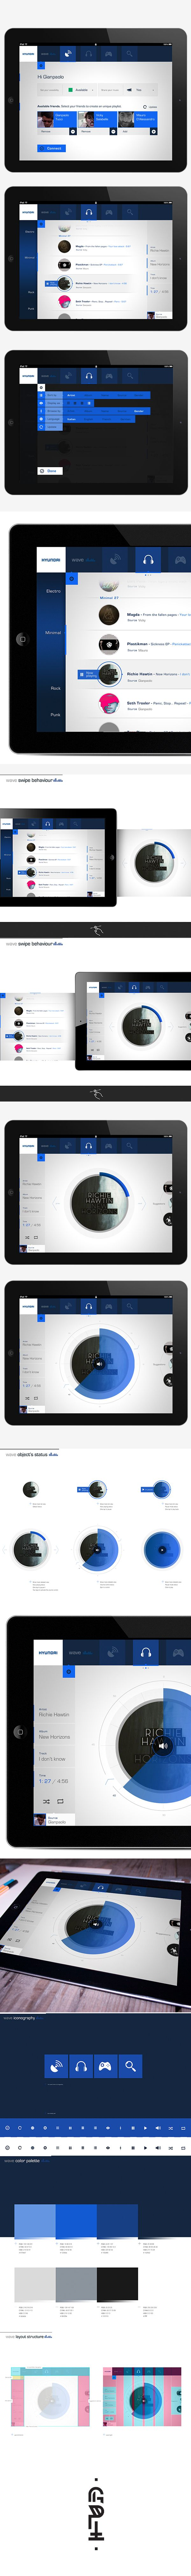 #iPad #tablet #app #ui